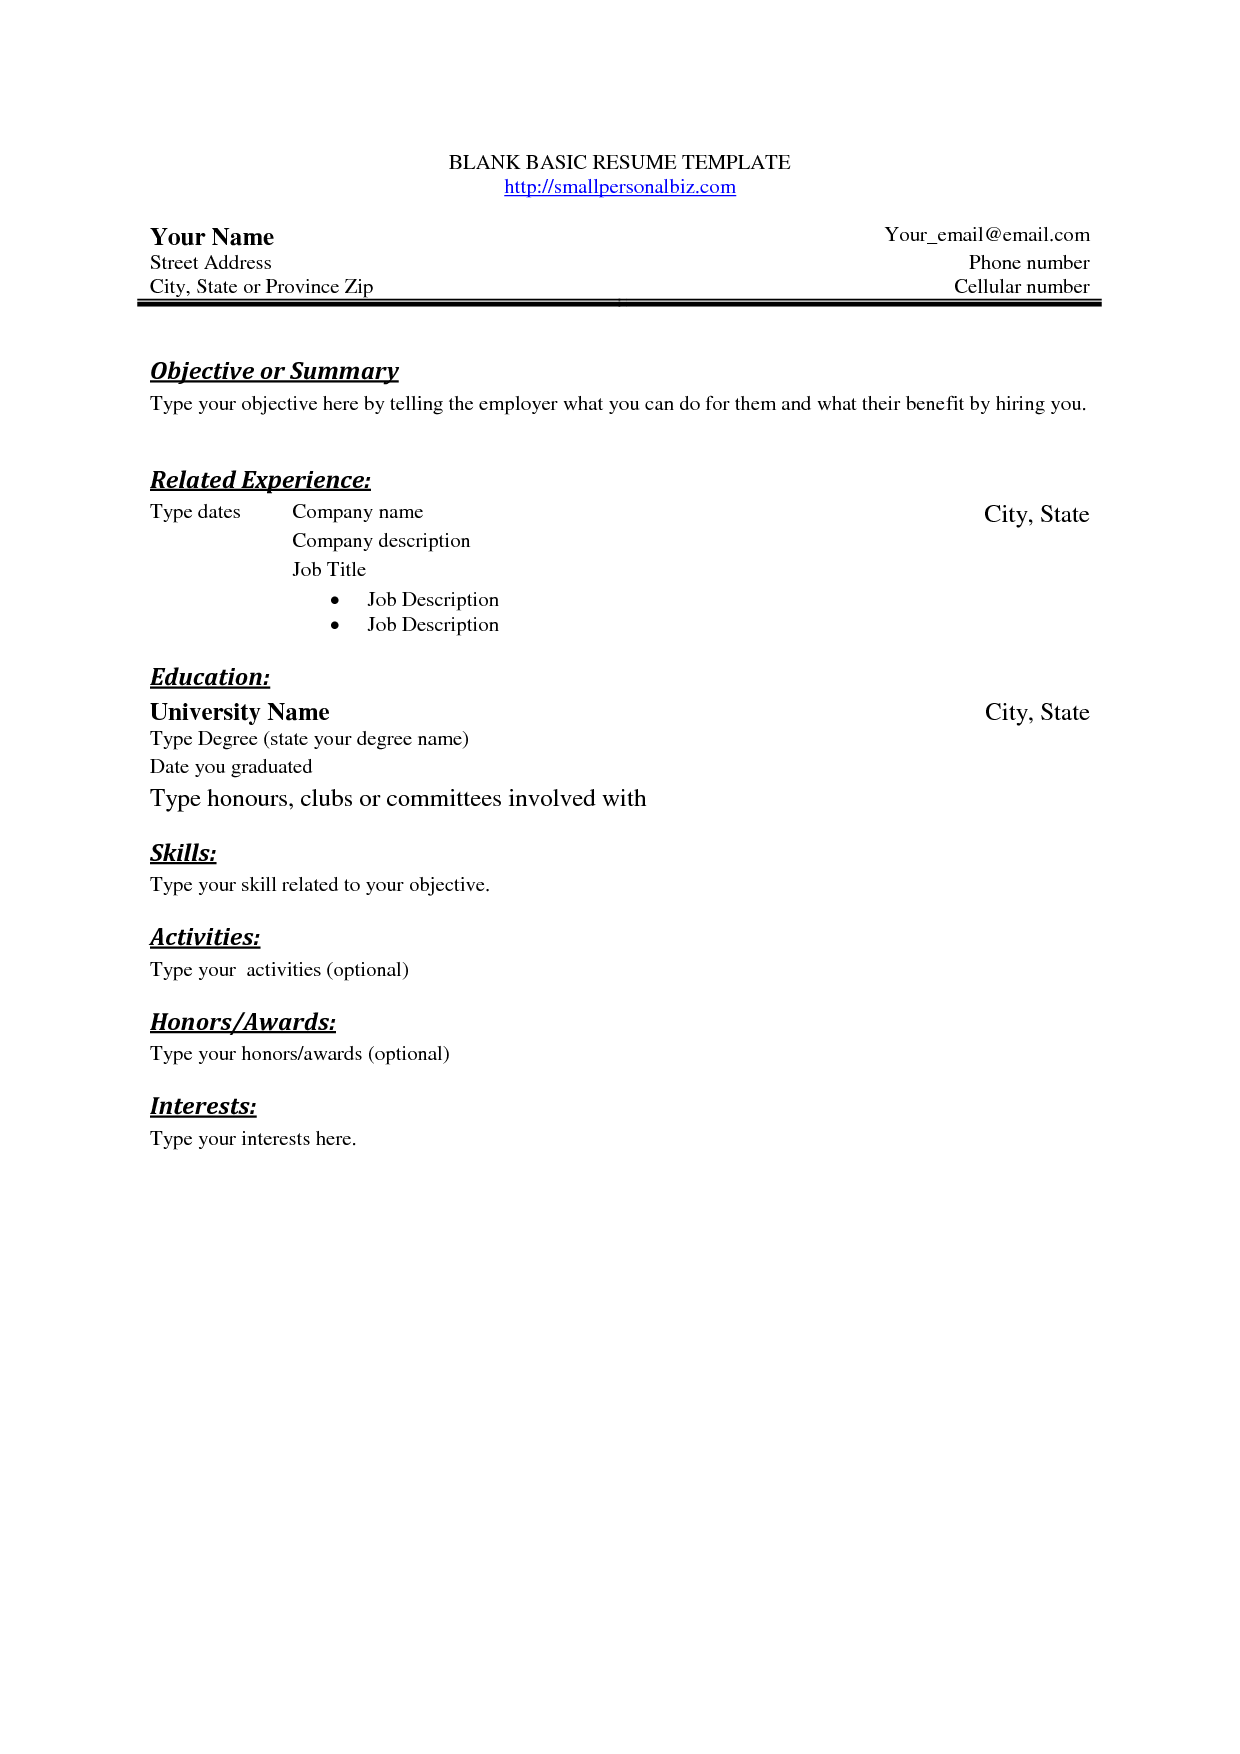 Blank Resume Template Stylist And Luxury Simple Resume Layout 10 Free Basic Blank Resume